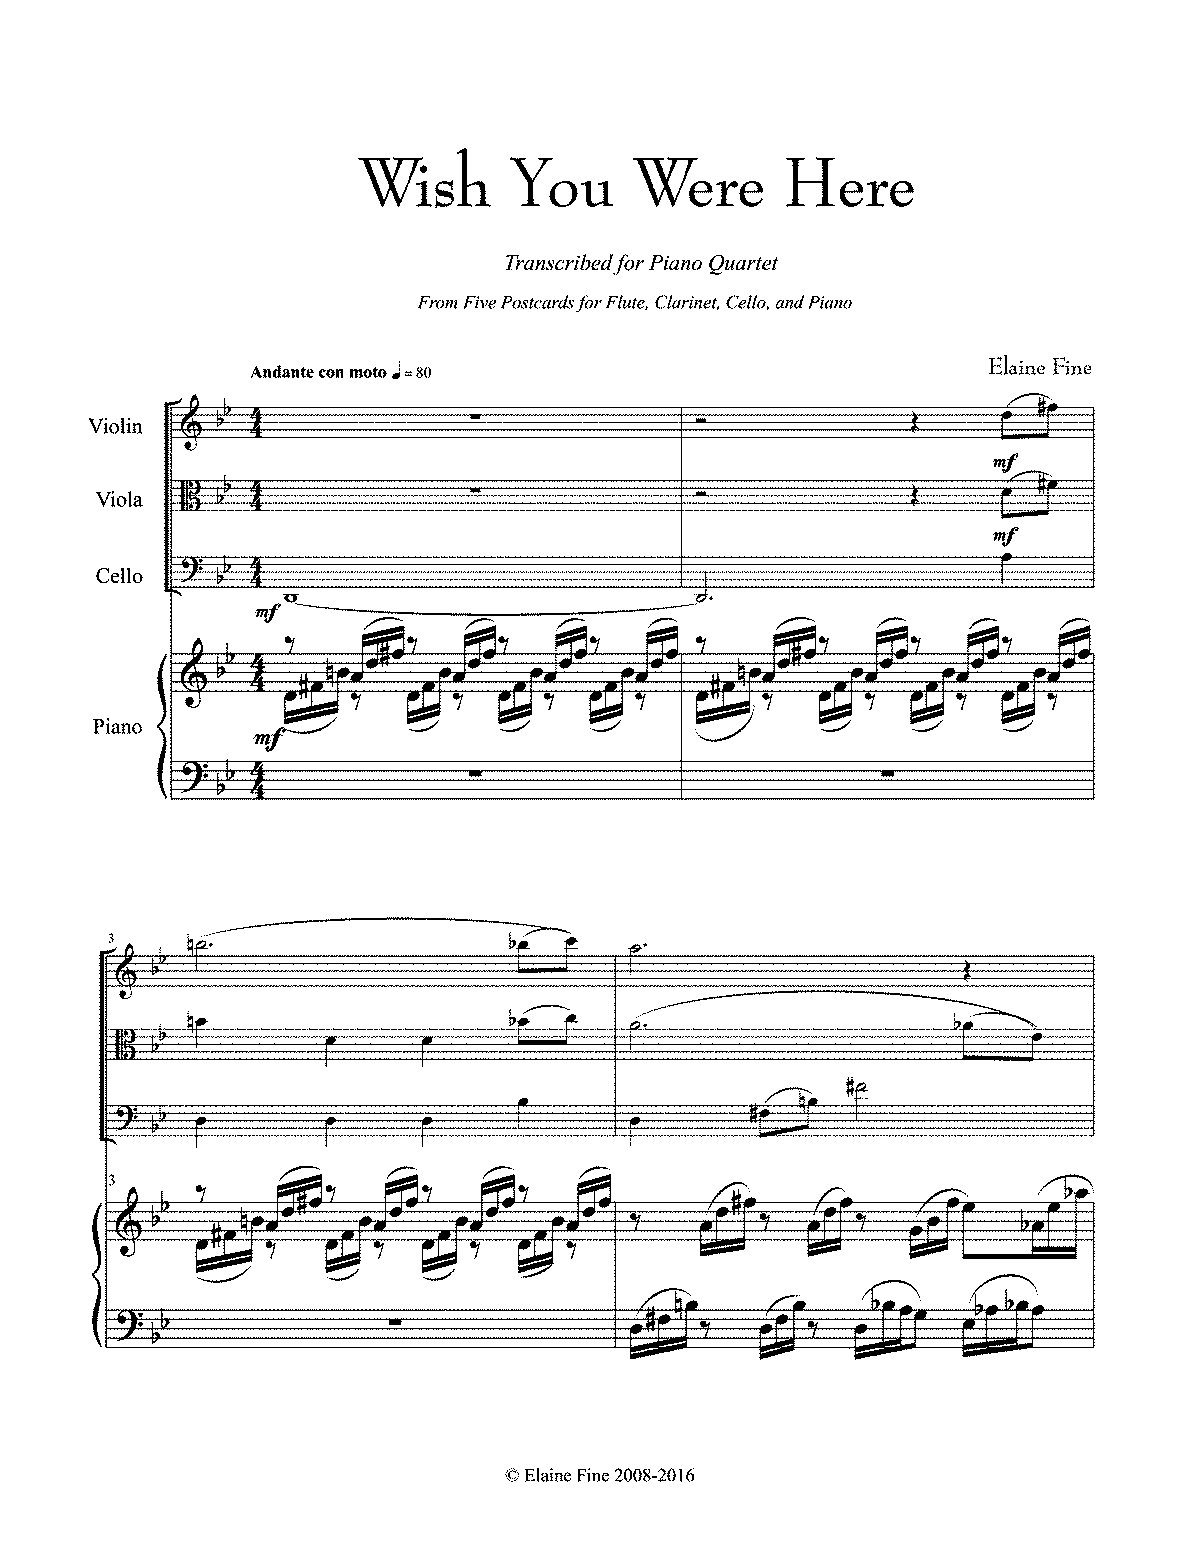 PMLP235341-Wish You Were Here Piano Quartet Score and Parts.pdf